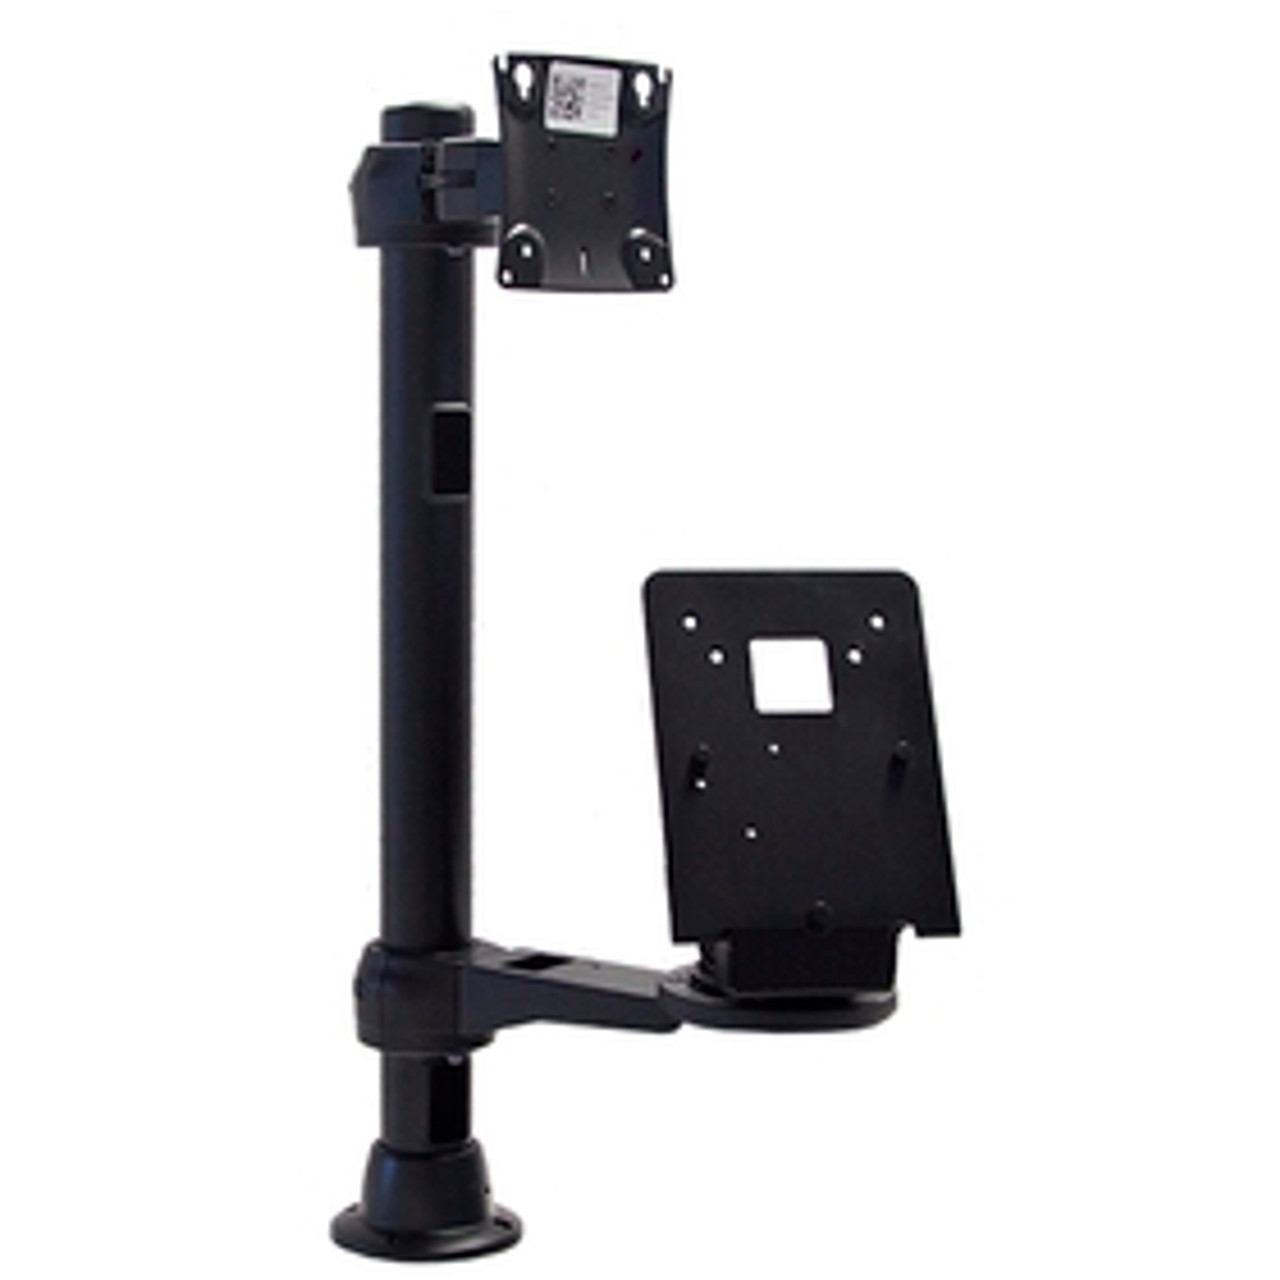 POS Ingenico isc480 Preconfigured Terminal Mount And Stand